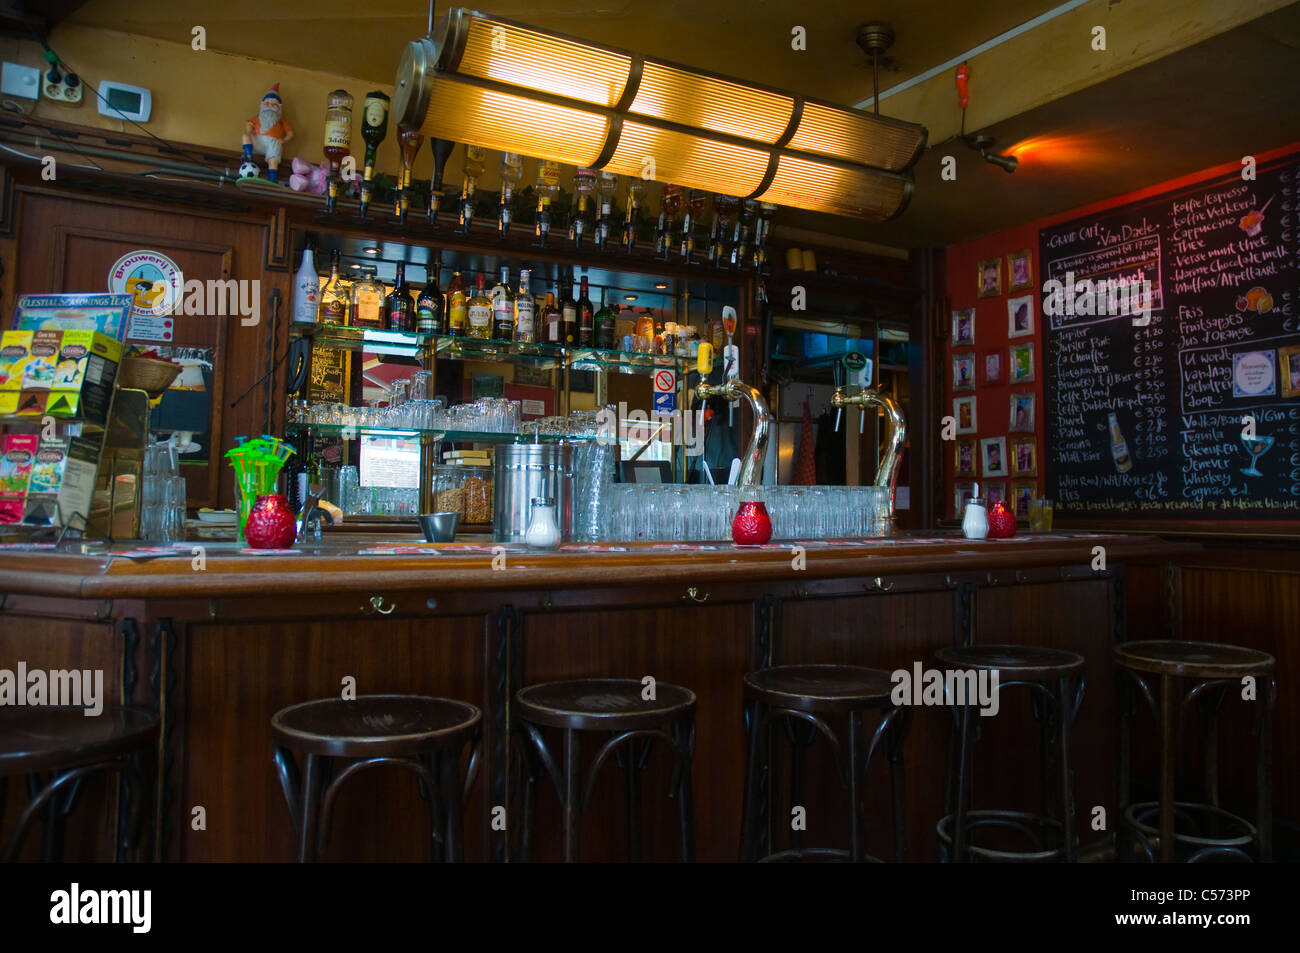 Amsterdam Bar Interior Stockfotos & Amsterdam Bar Interior Bilder ...